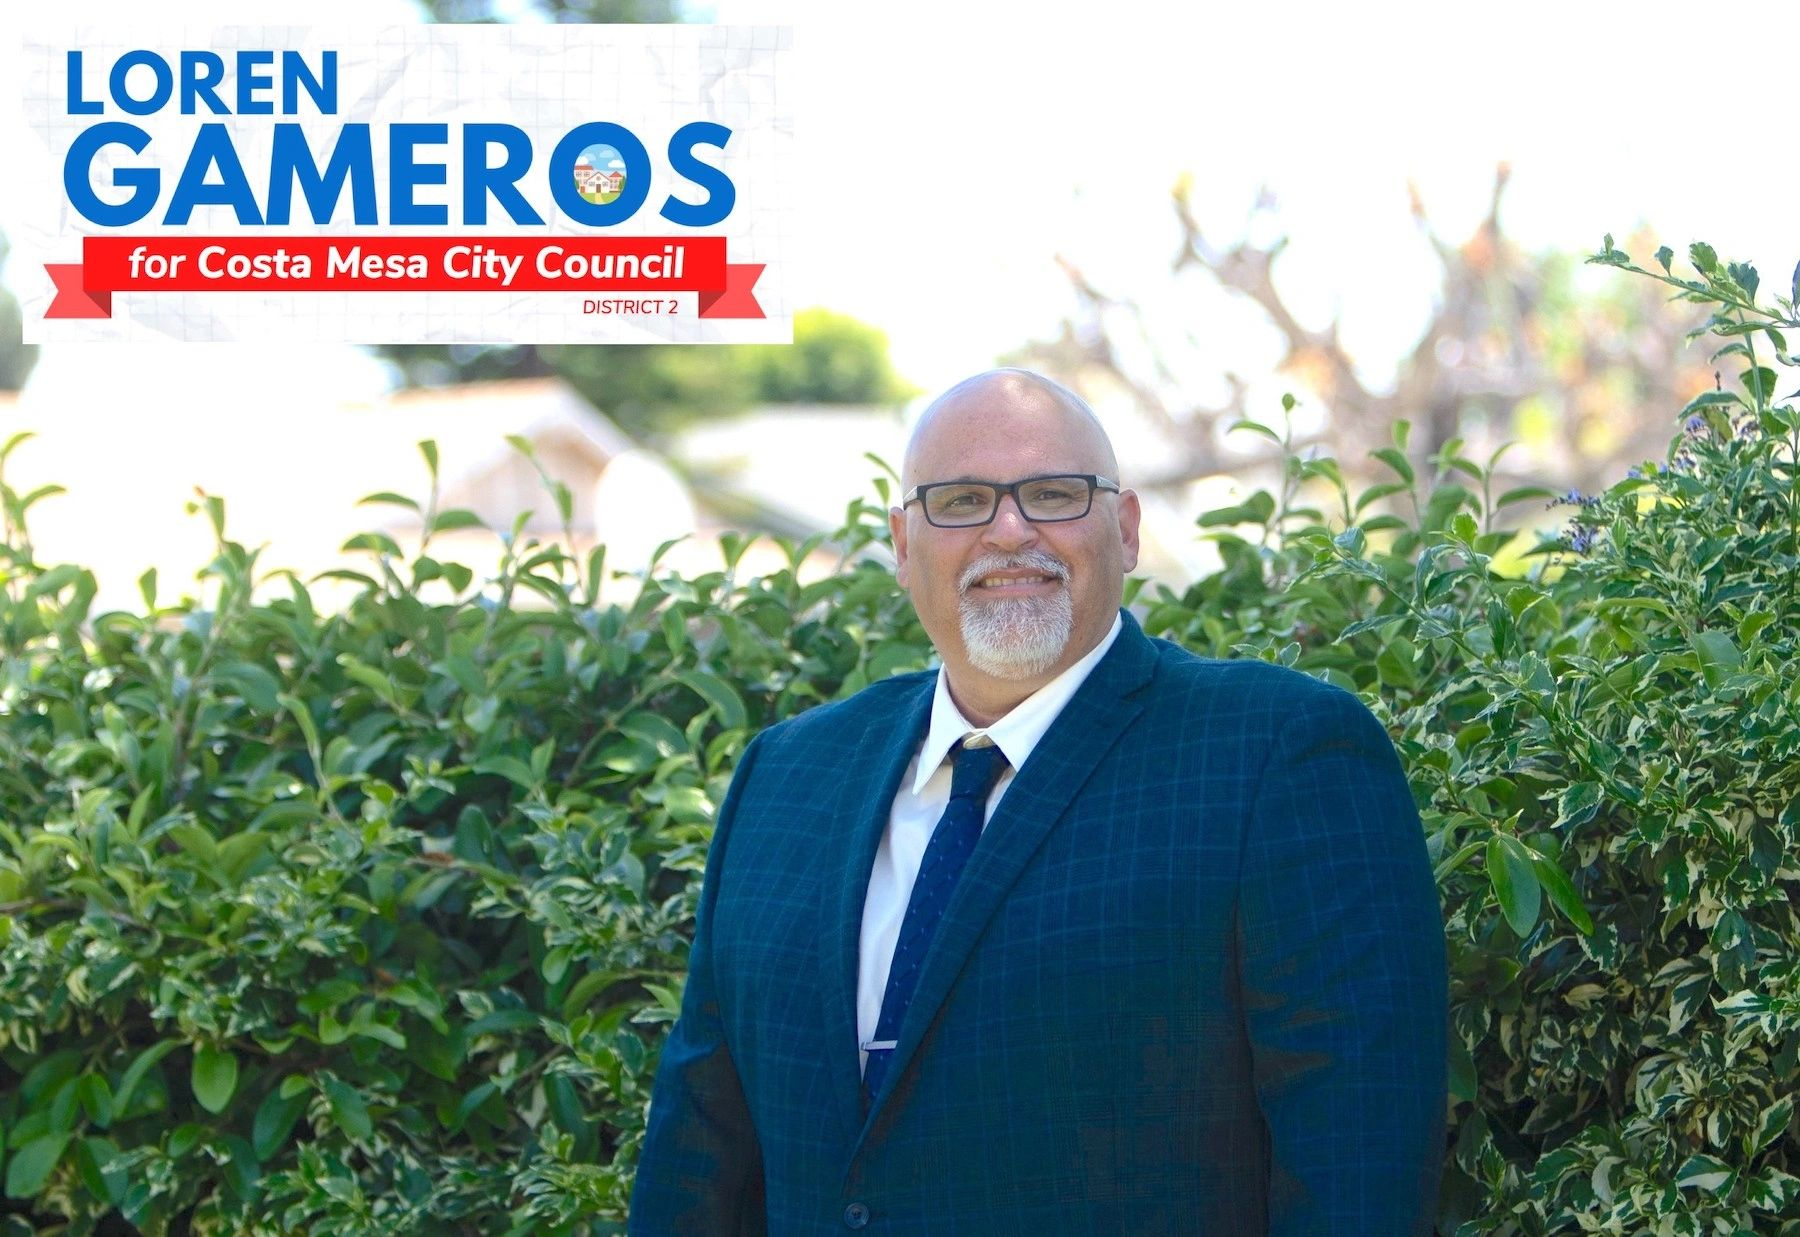 Loren Gameros for Costa Mesa City Council District 2 in 2020, Council Campaign Headshot